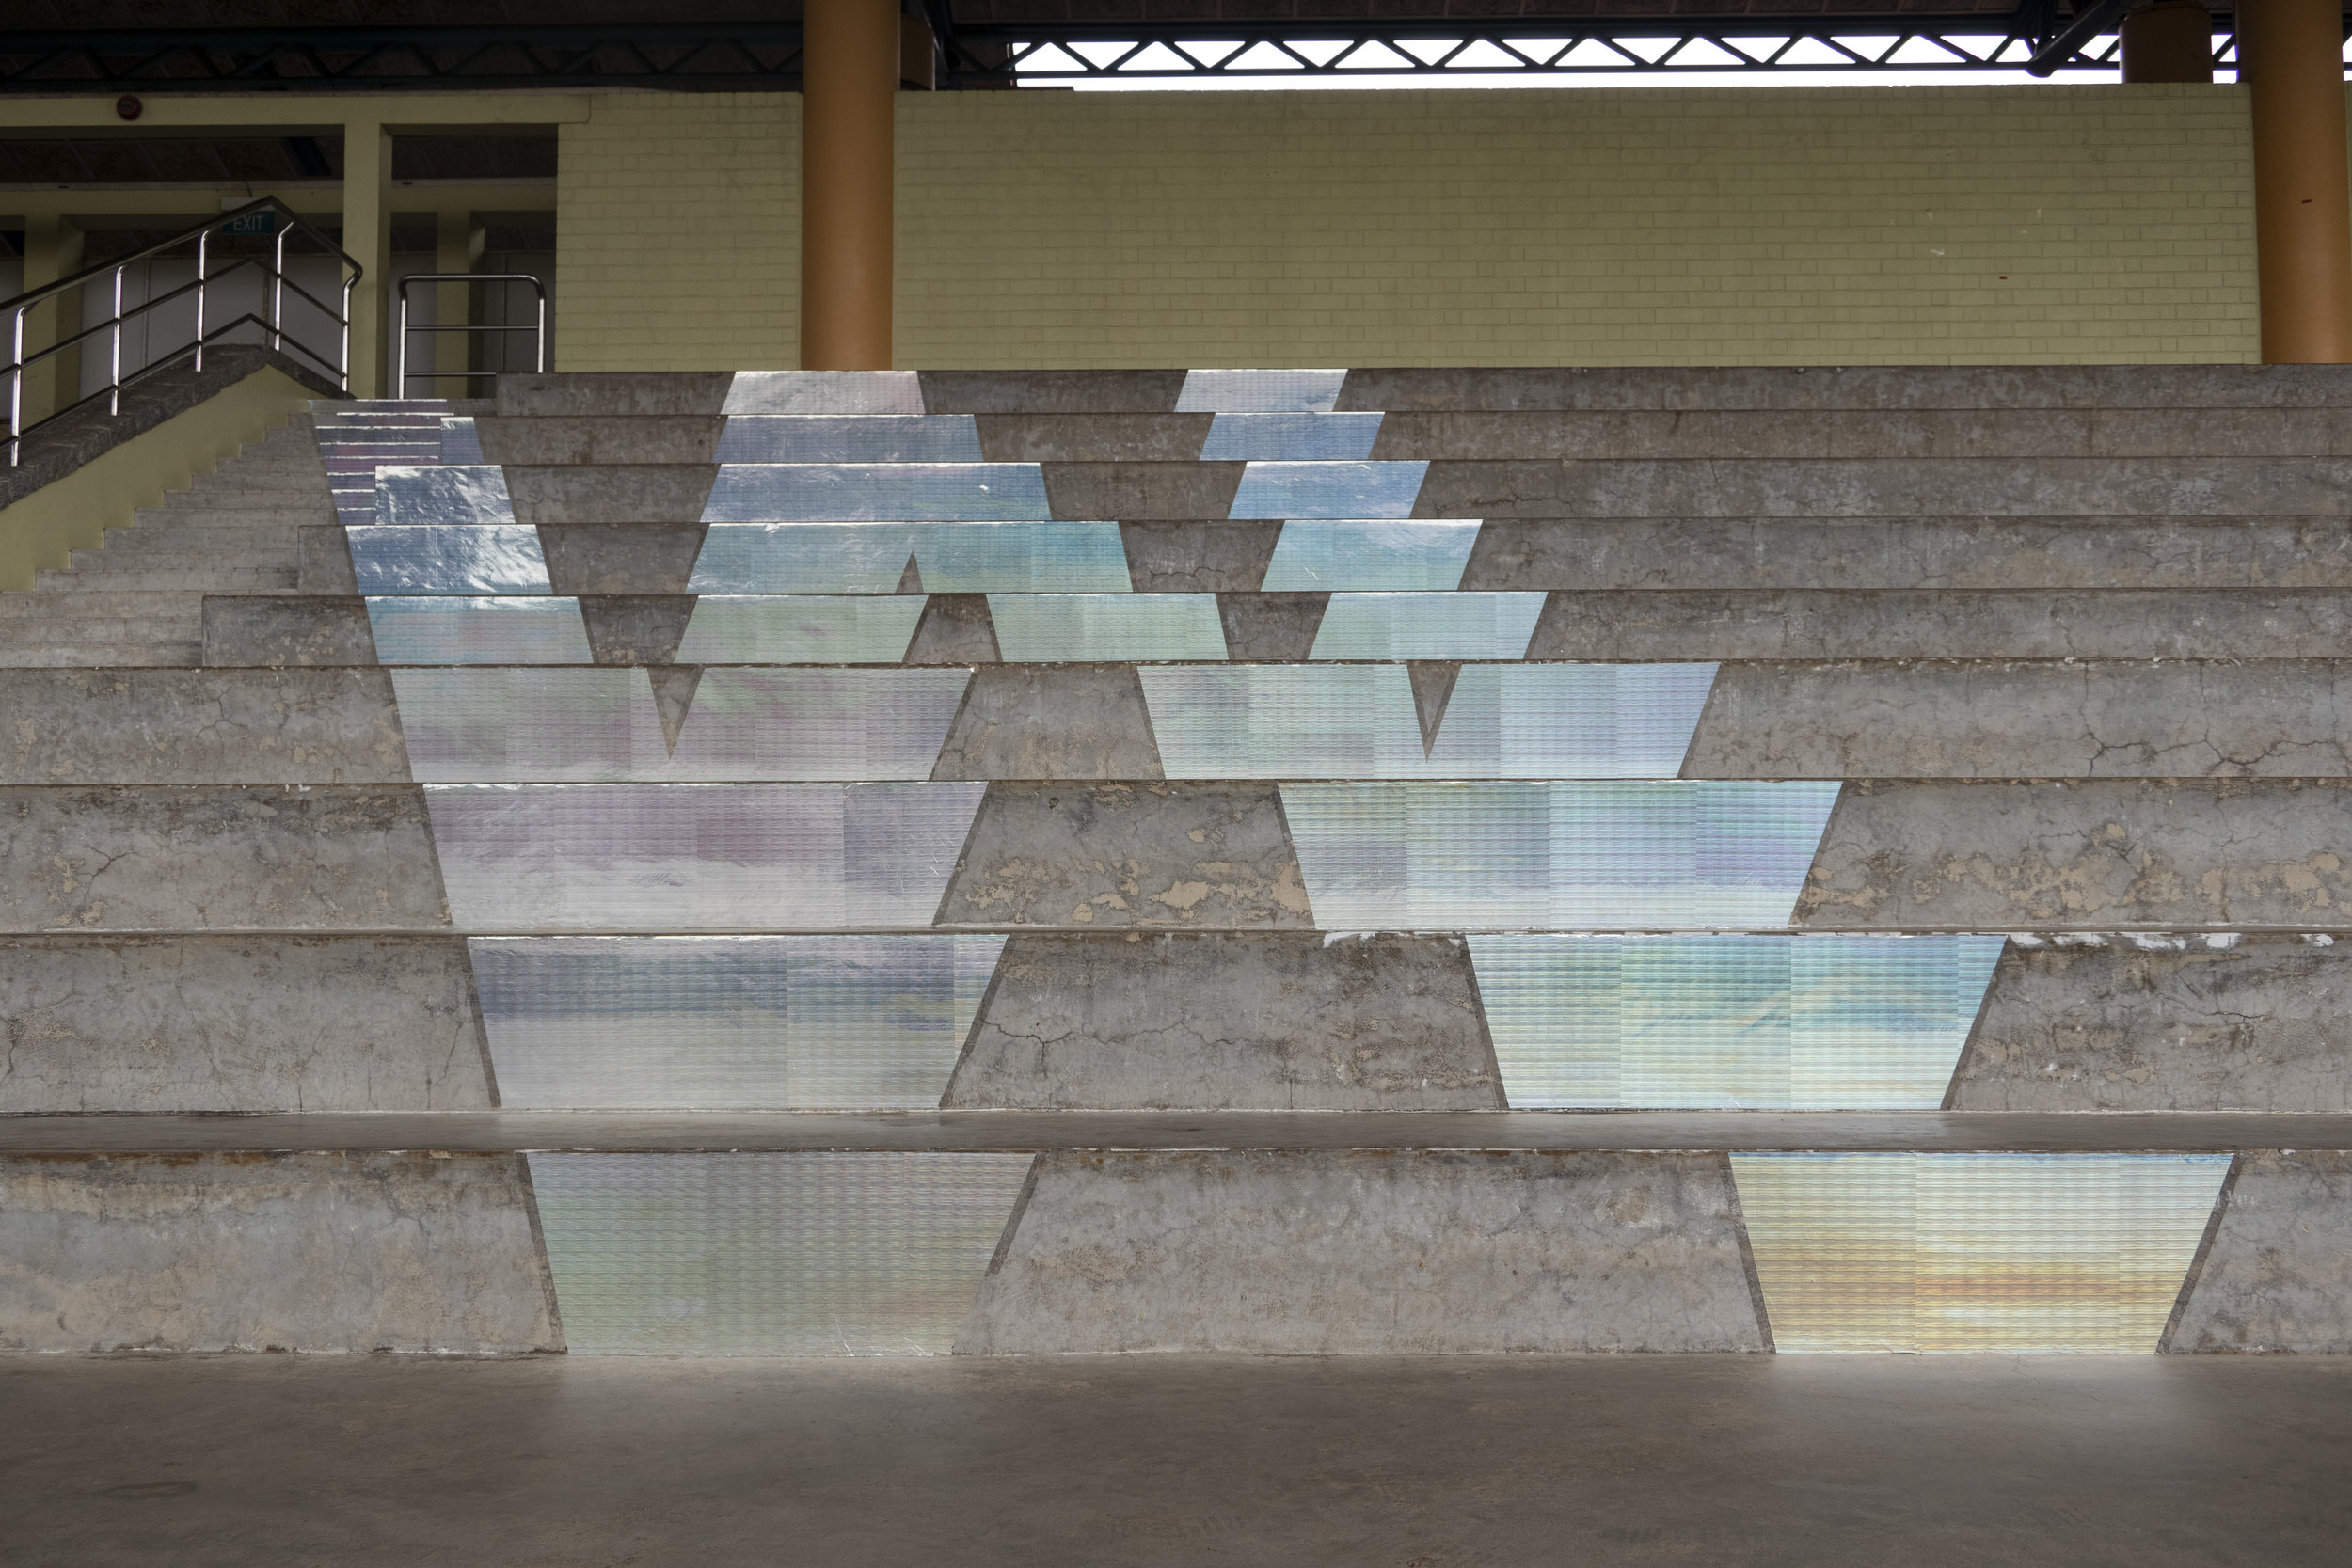 "Michael Lee,  How are things  (detail), 2018, holographic stickers on risers on Woodlands Stadium grandstand, Singapore, part of the public art exhibition, ""Placing Home: Woodlands"", curated by Wang Ruo Bing for Arts in Your Neighbourhood, 2018. Photo by Ken Cheong."